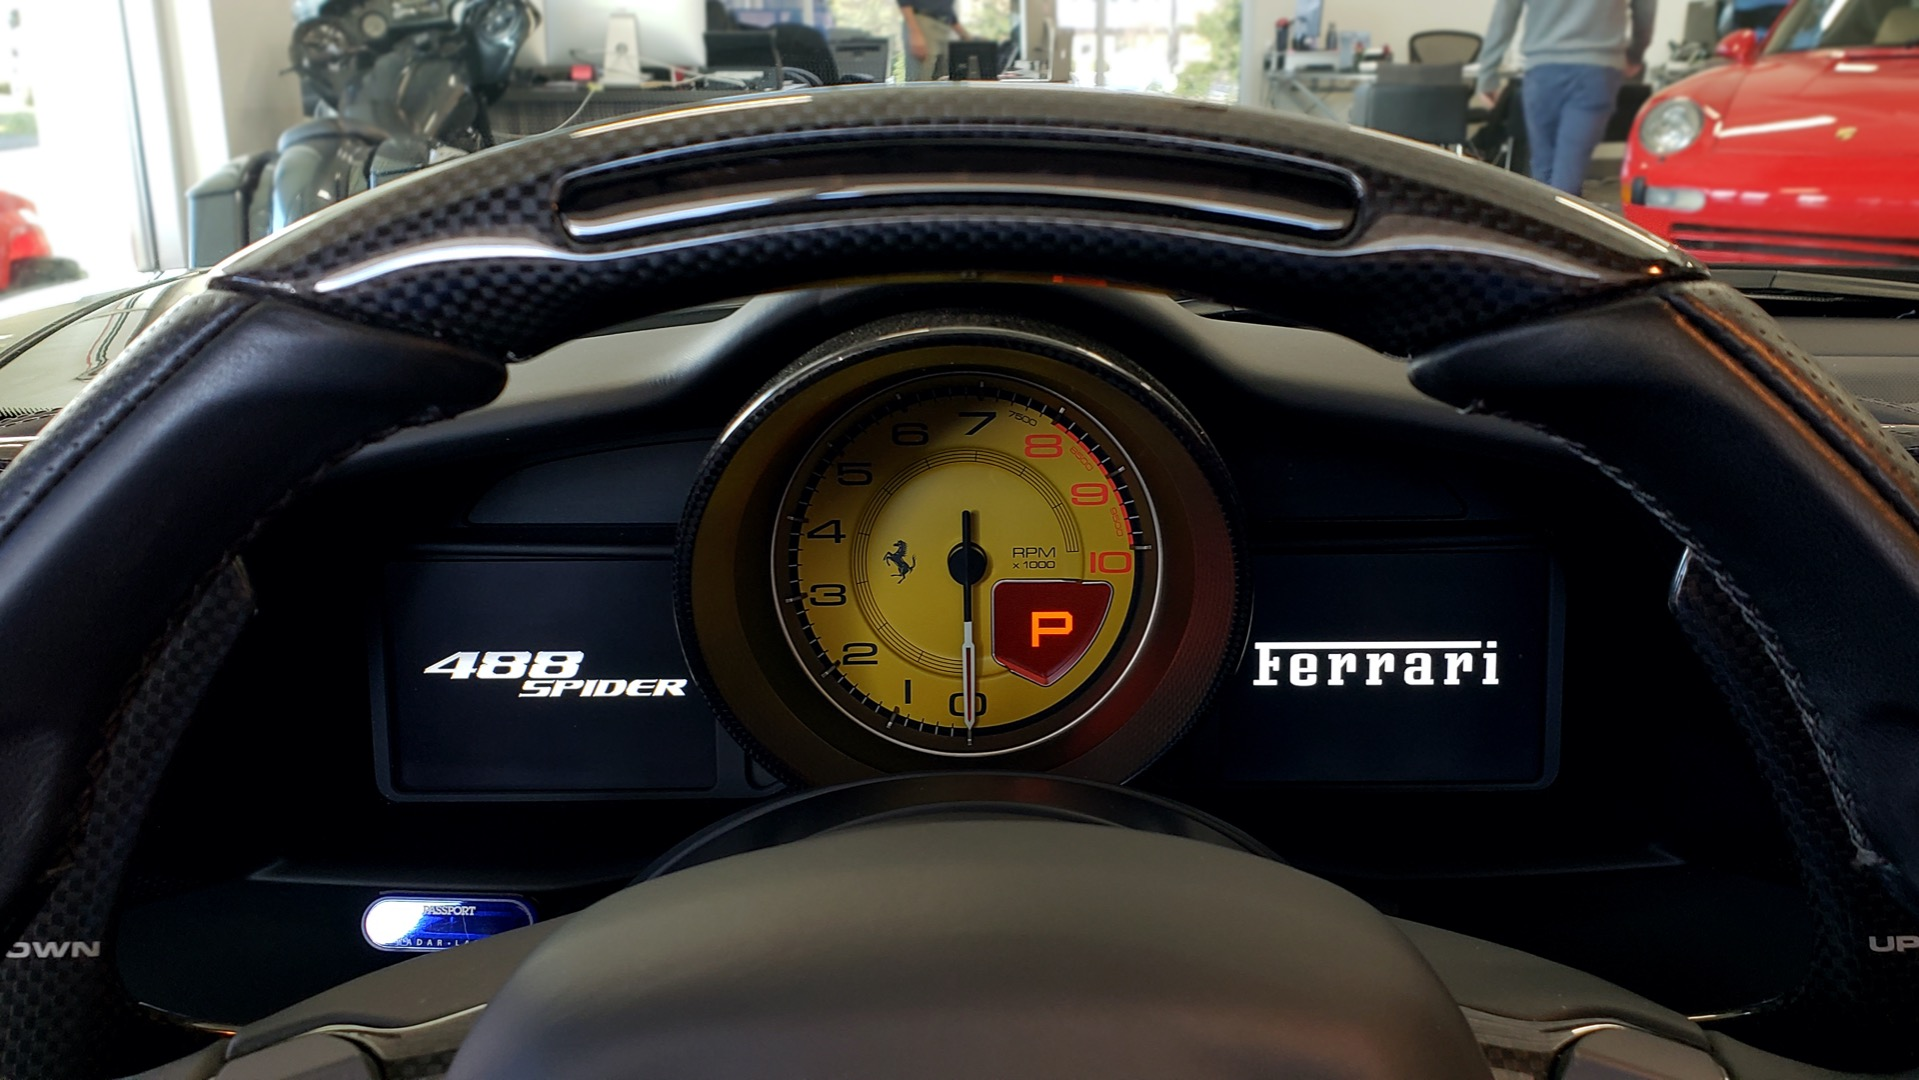 Used 2017 Ferrari 488 Spider SUSP LFT / JBL SND / SPRT EXH / F1 TRANS for sale $315,000 at Formula Imports in Charlotte NC 28227 54